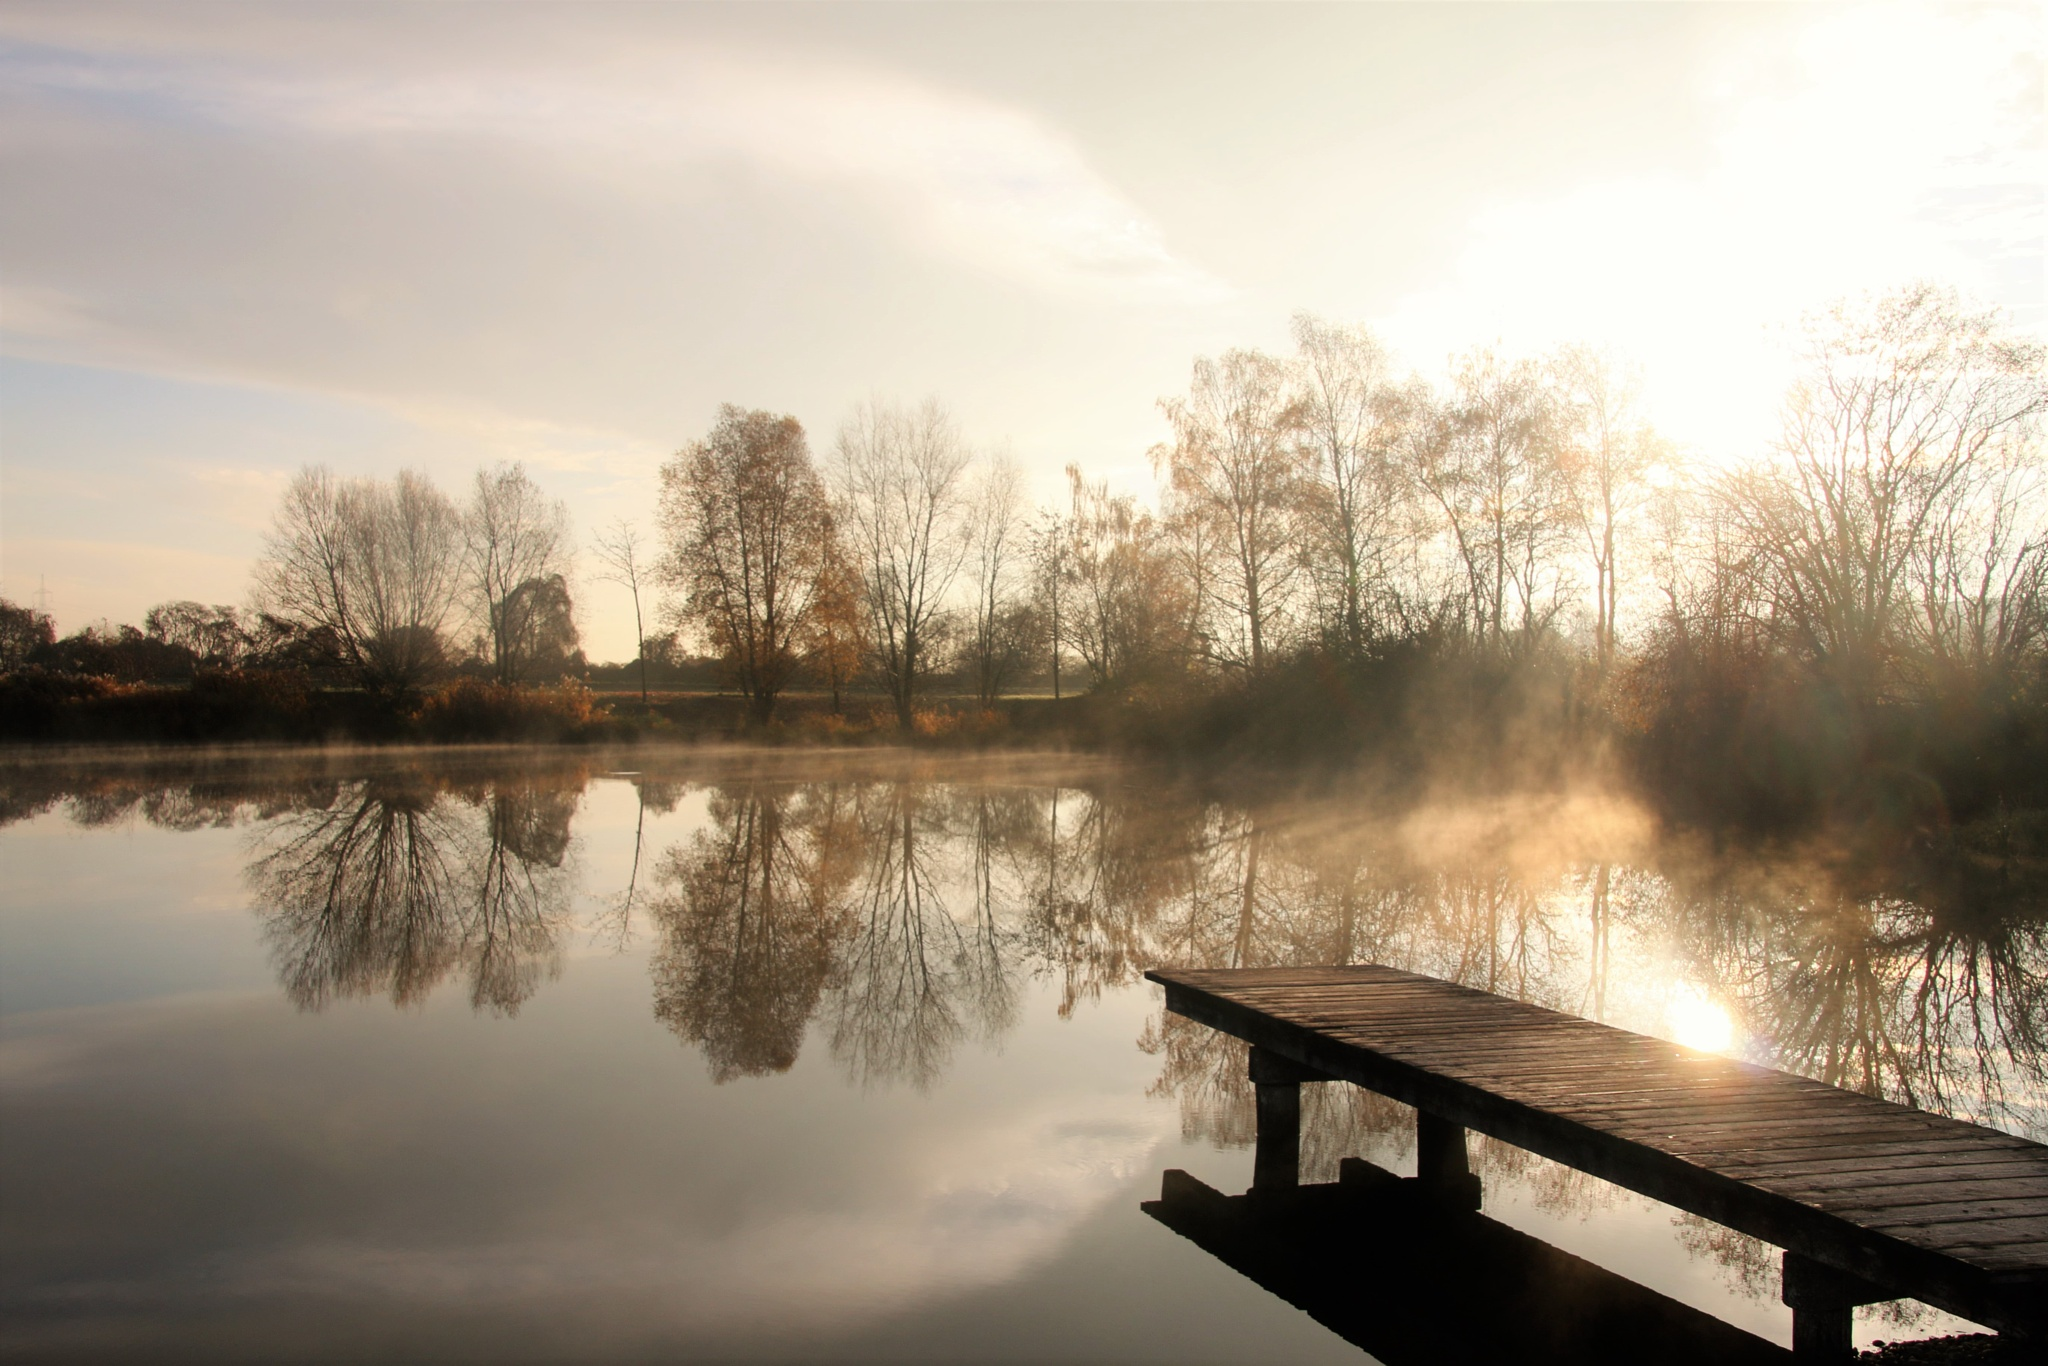 In the early november morning by GabrieleHeiss